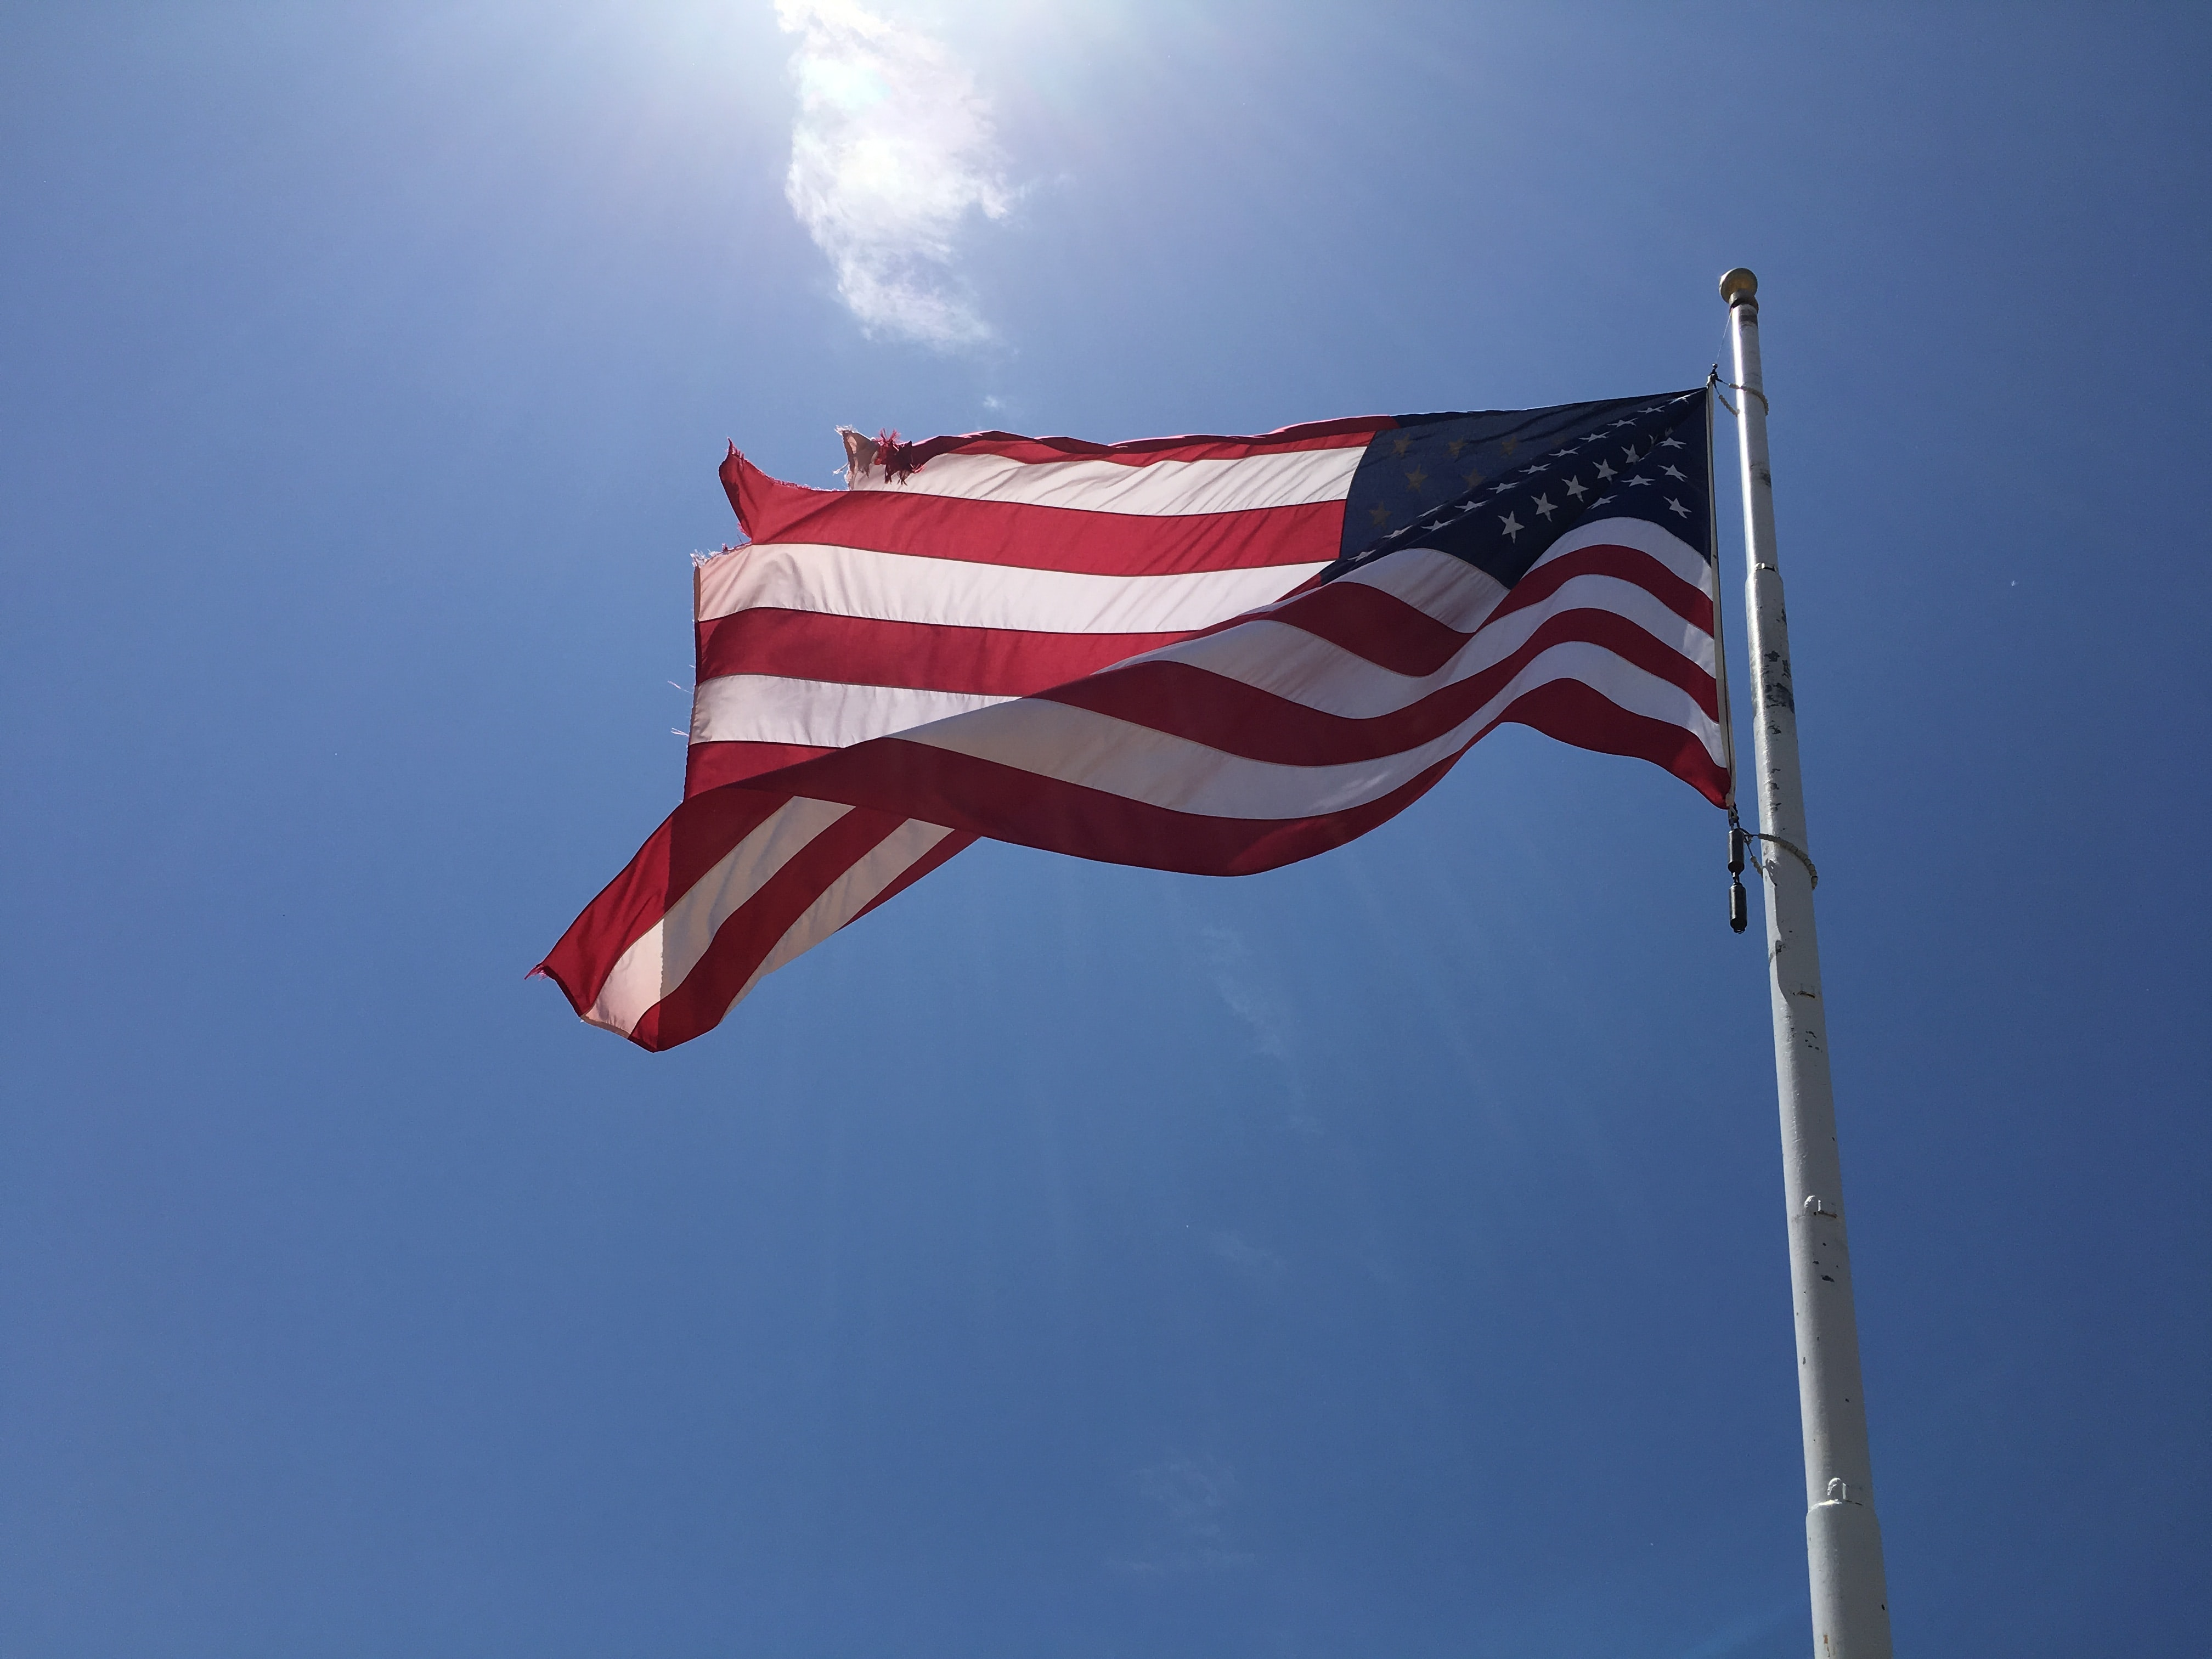 American flag flying in the wind against a sunny blue sky